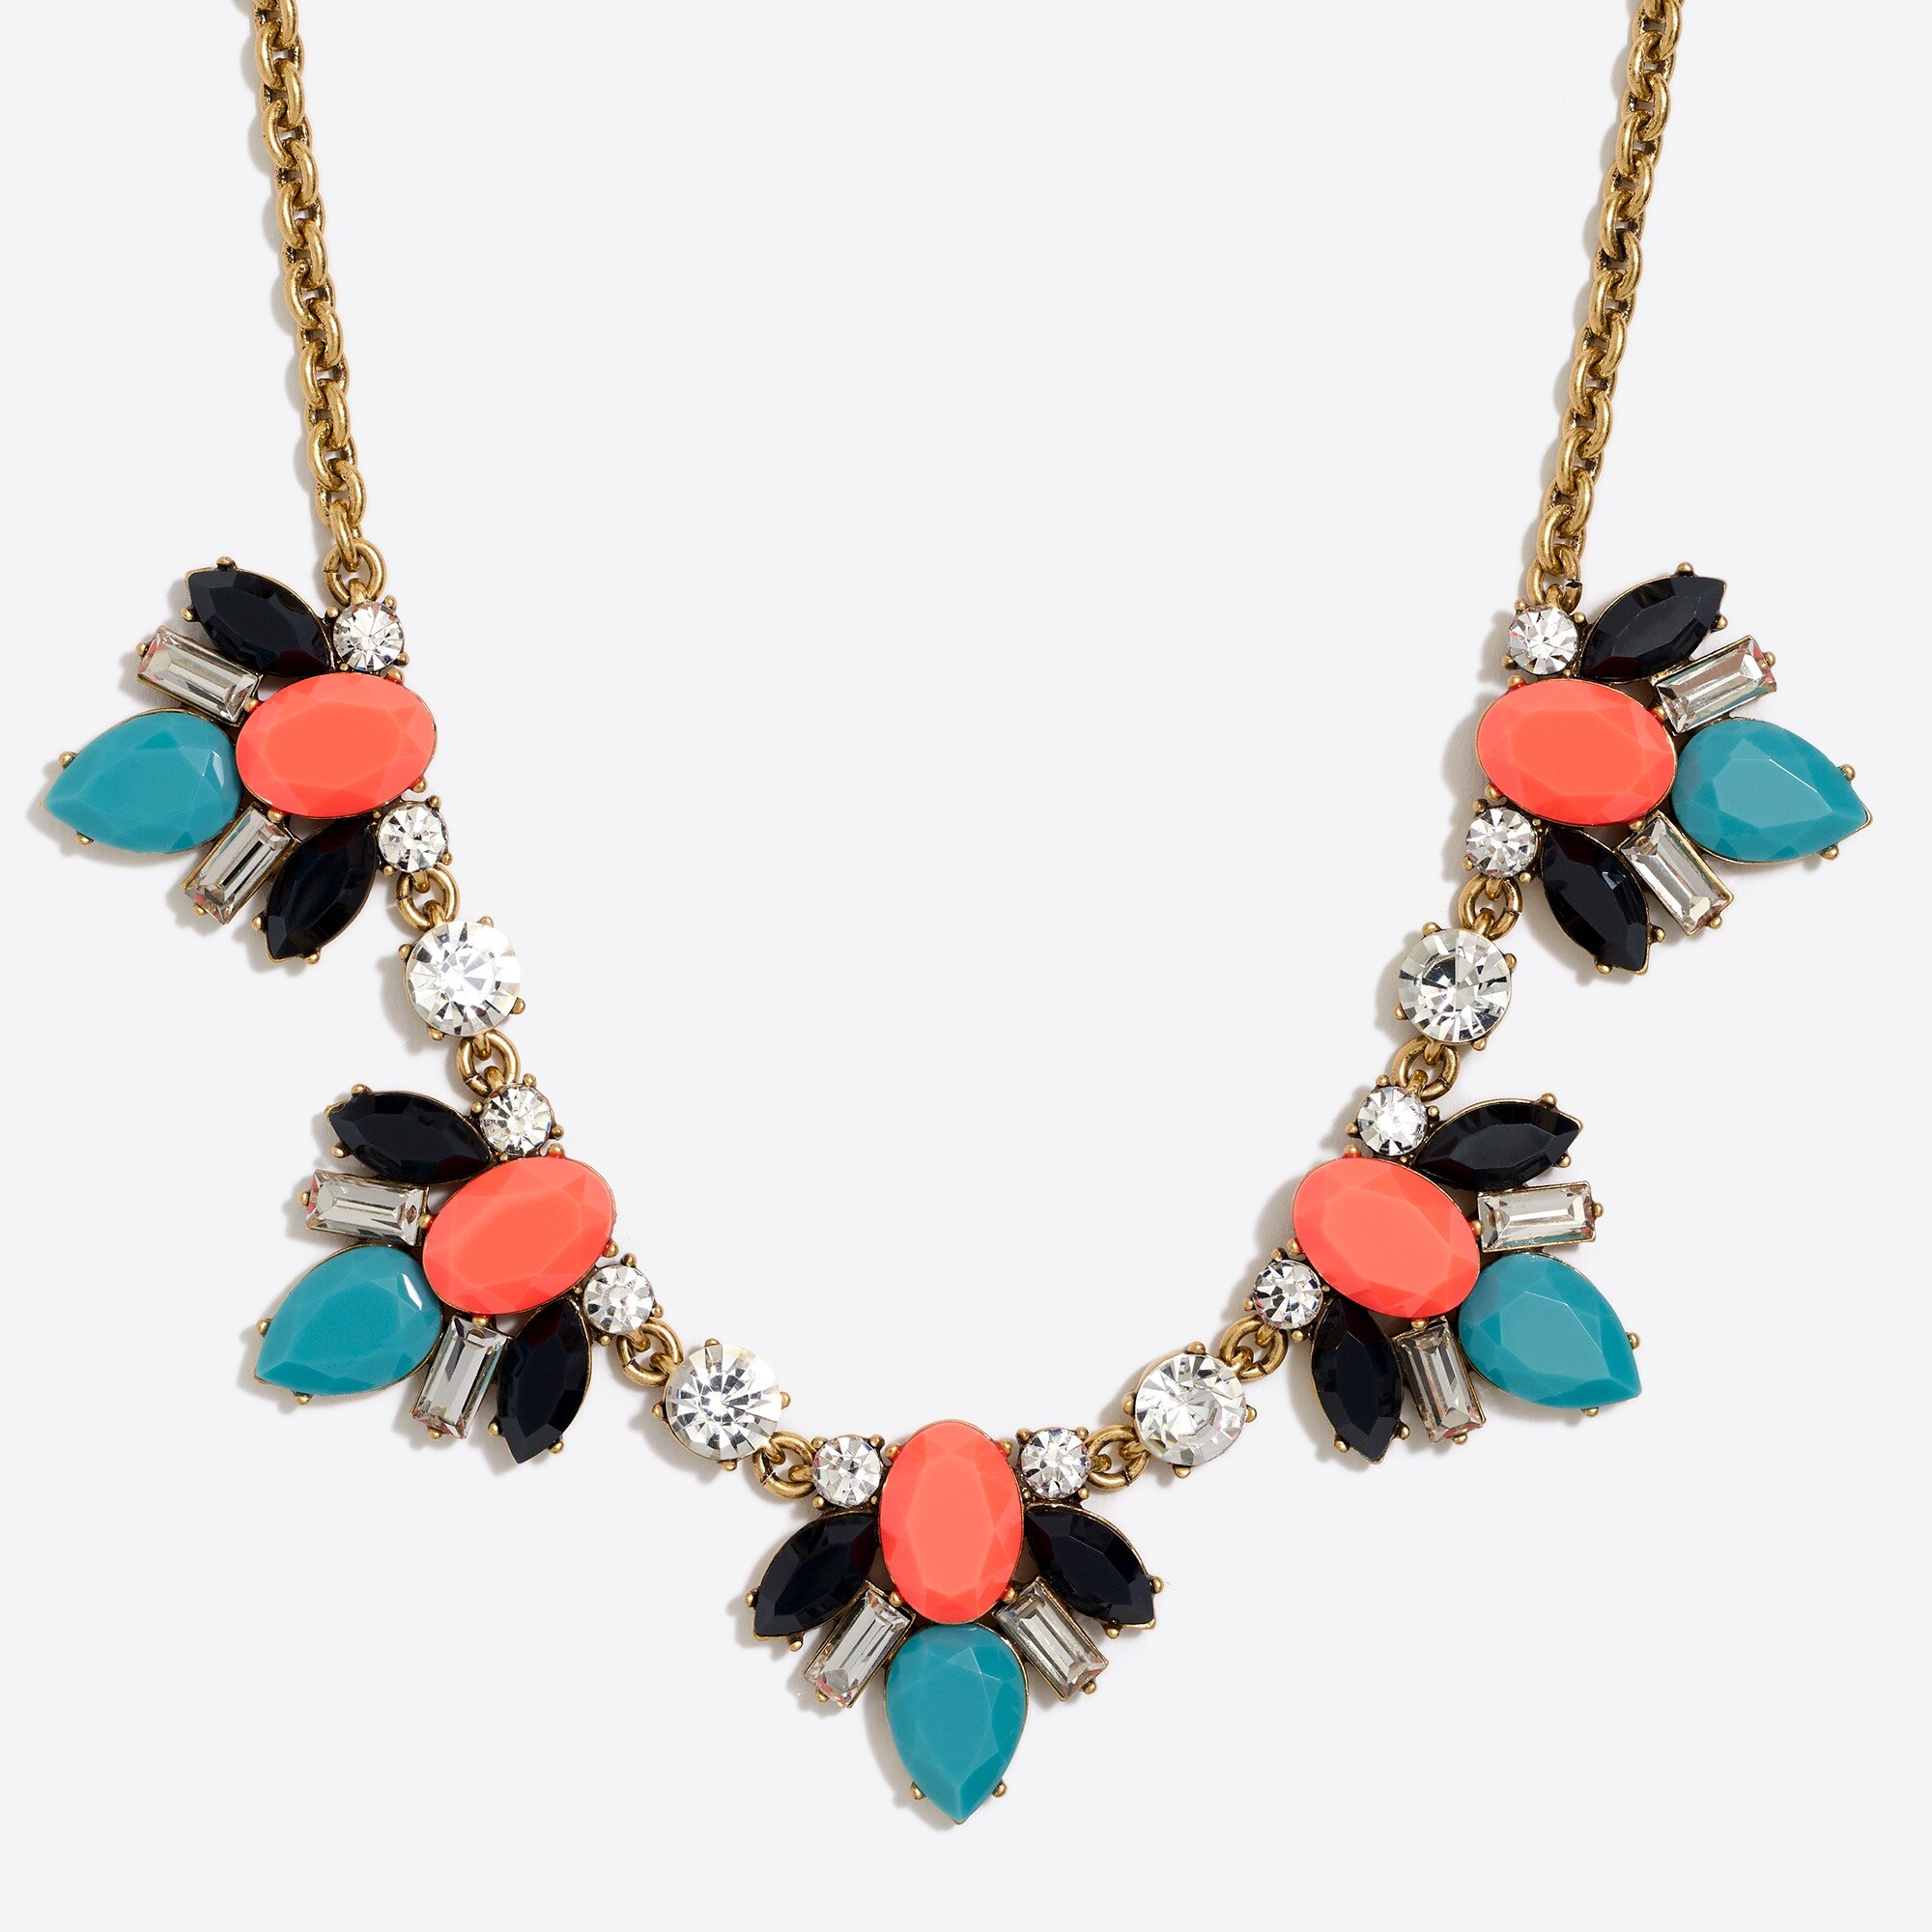 Gemstone cluster statement necklace